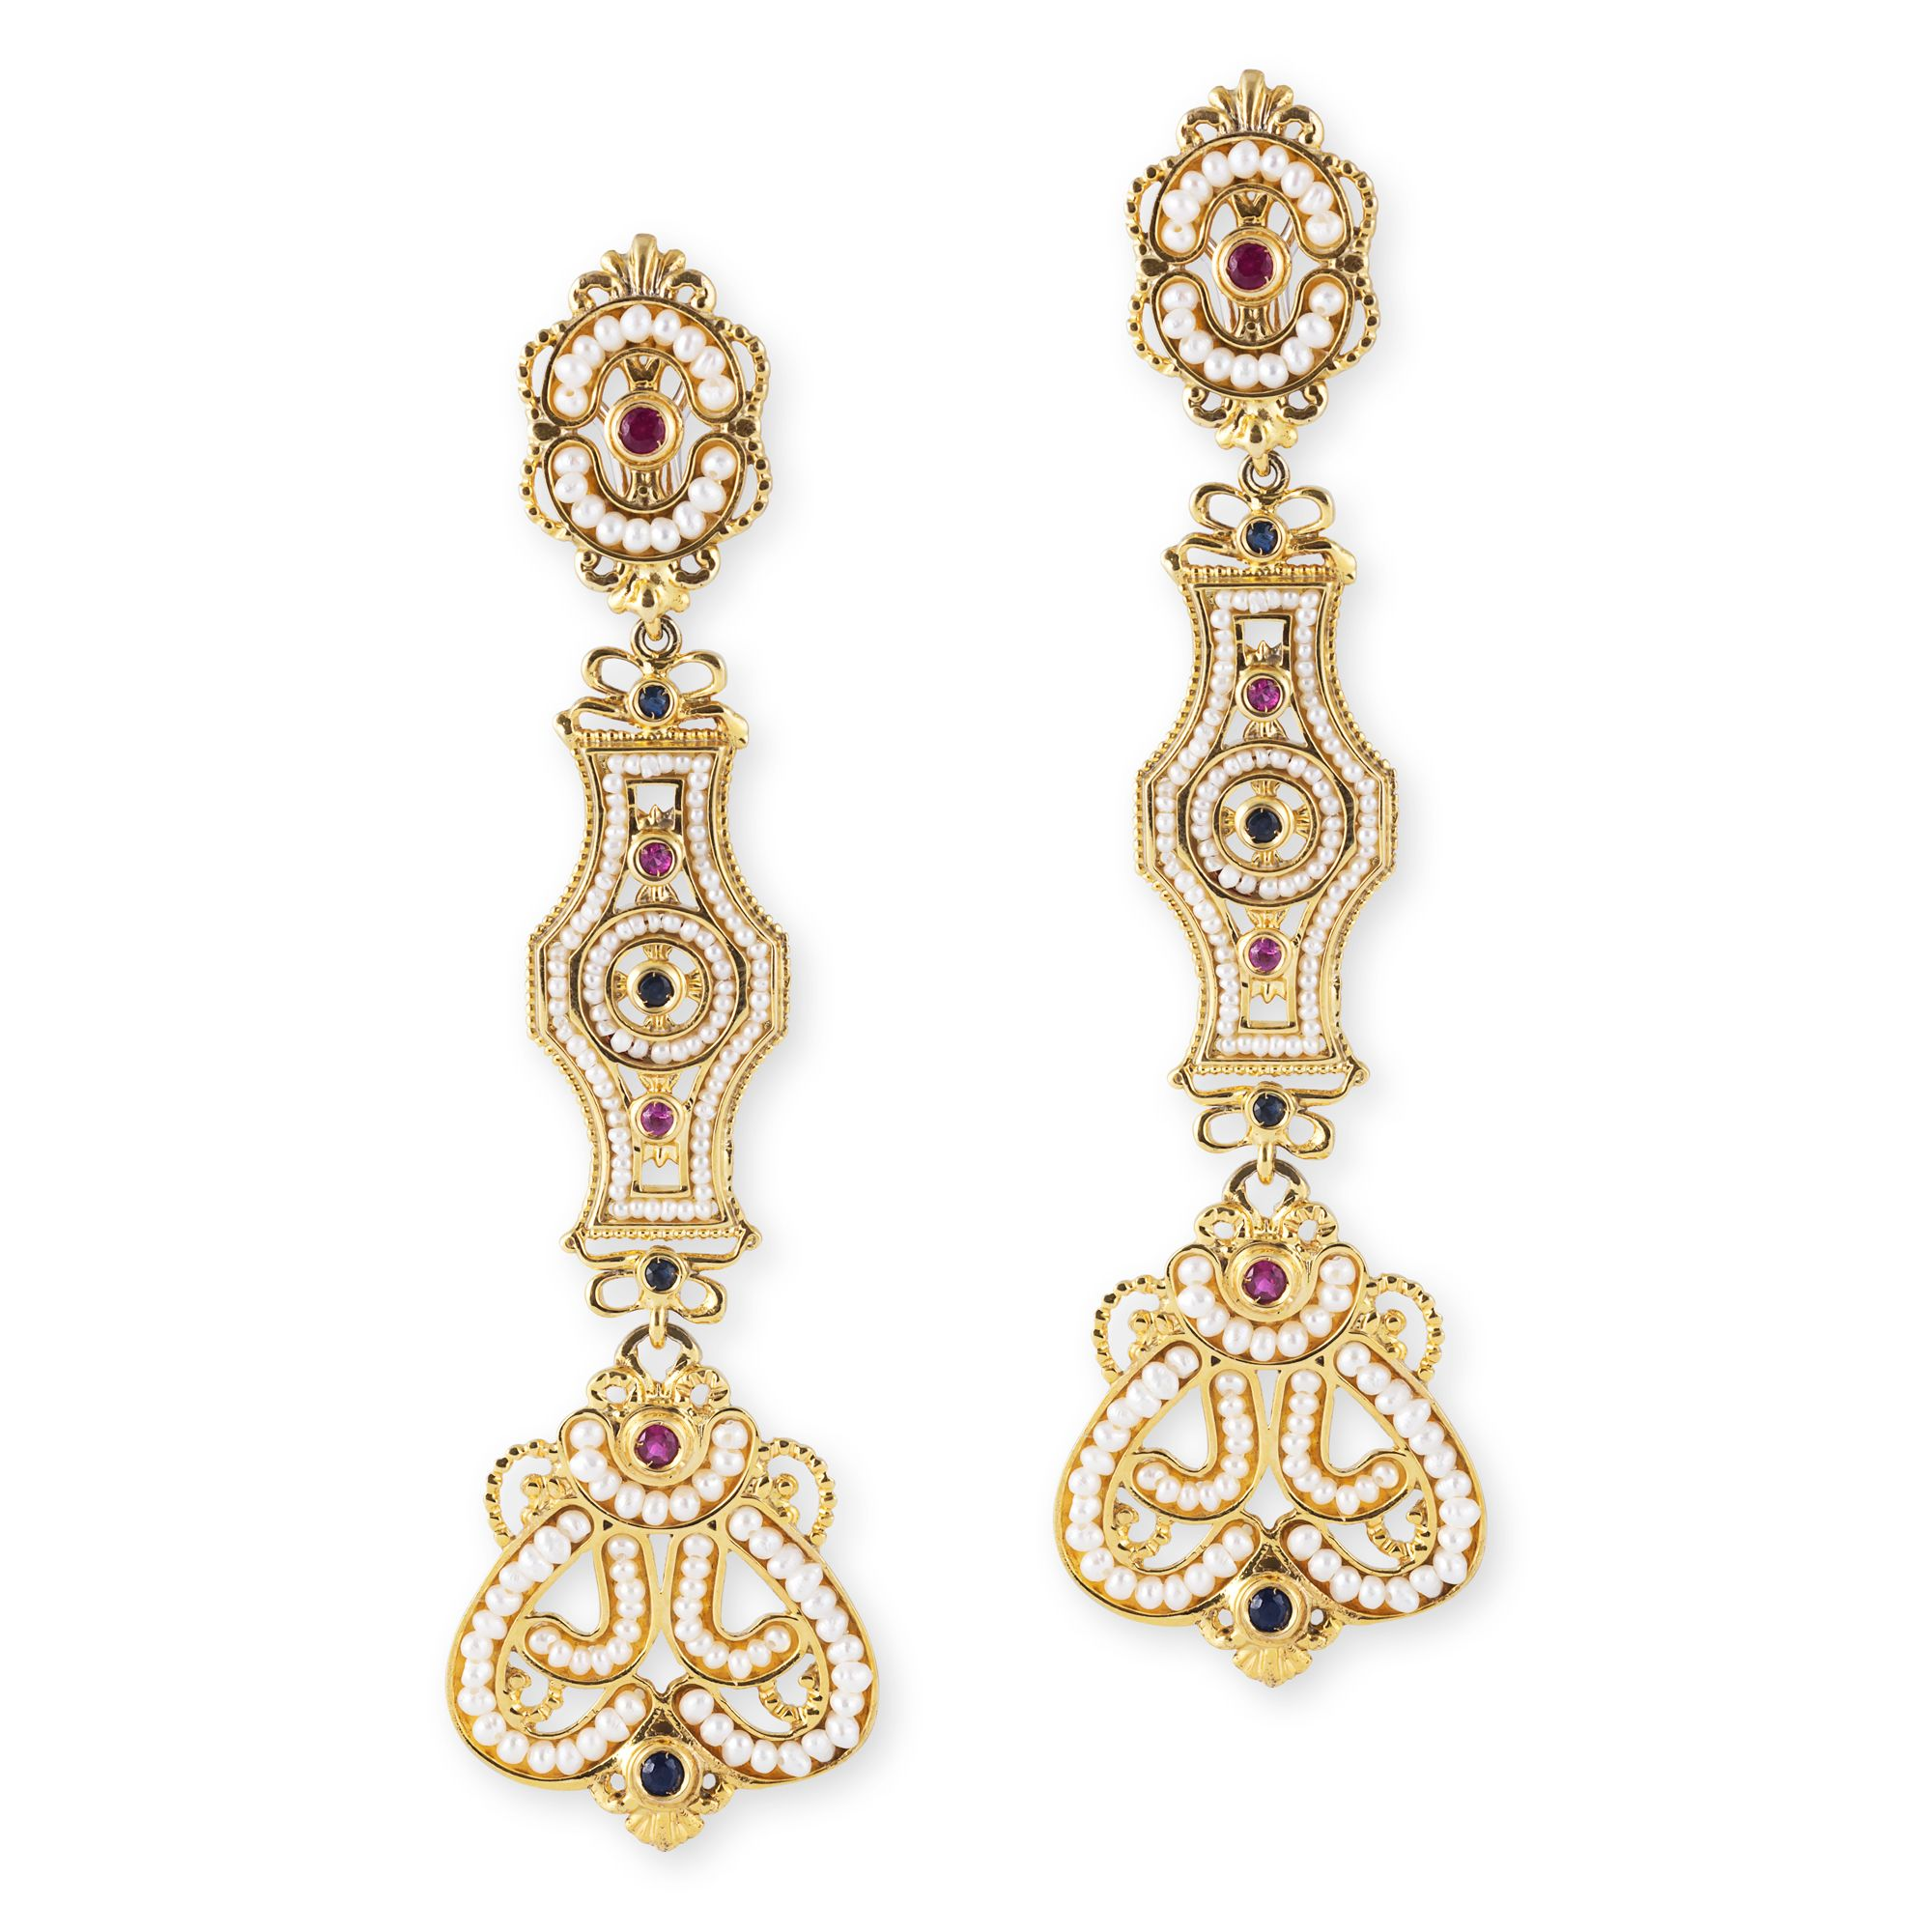 Gold pendant Earrings with Pearls and precious Stones (14268)